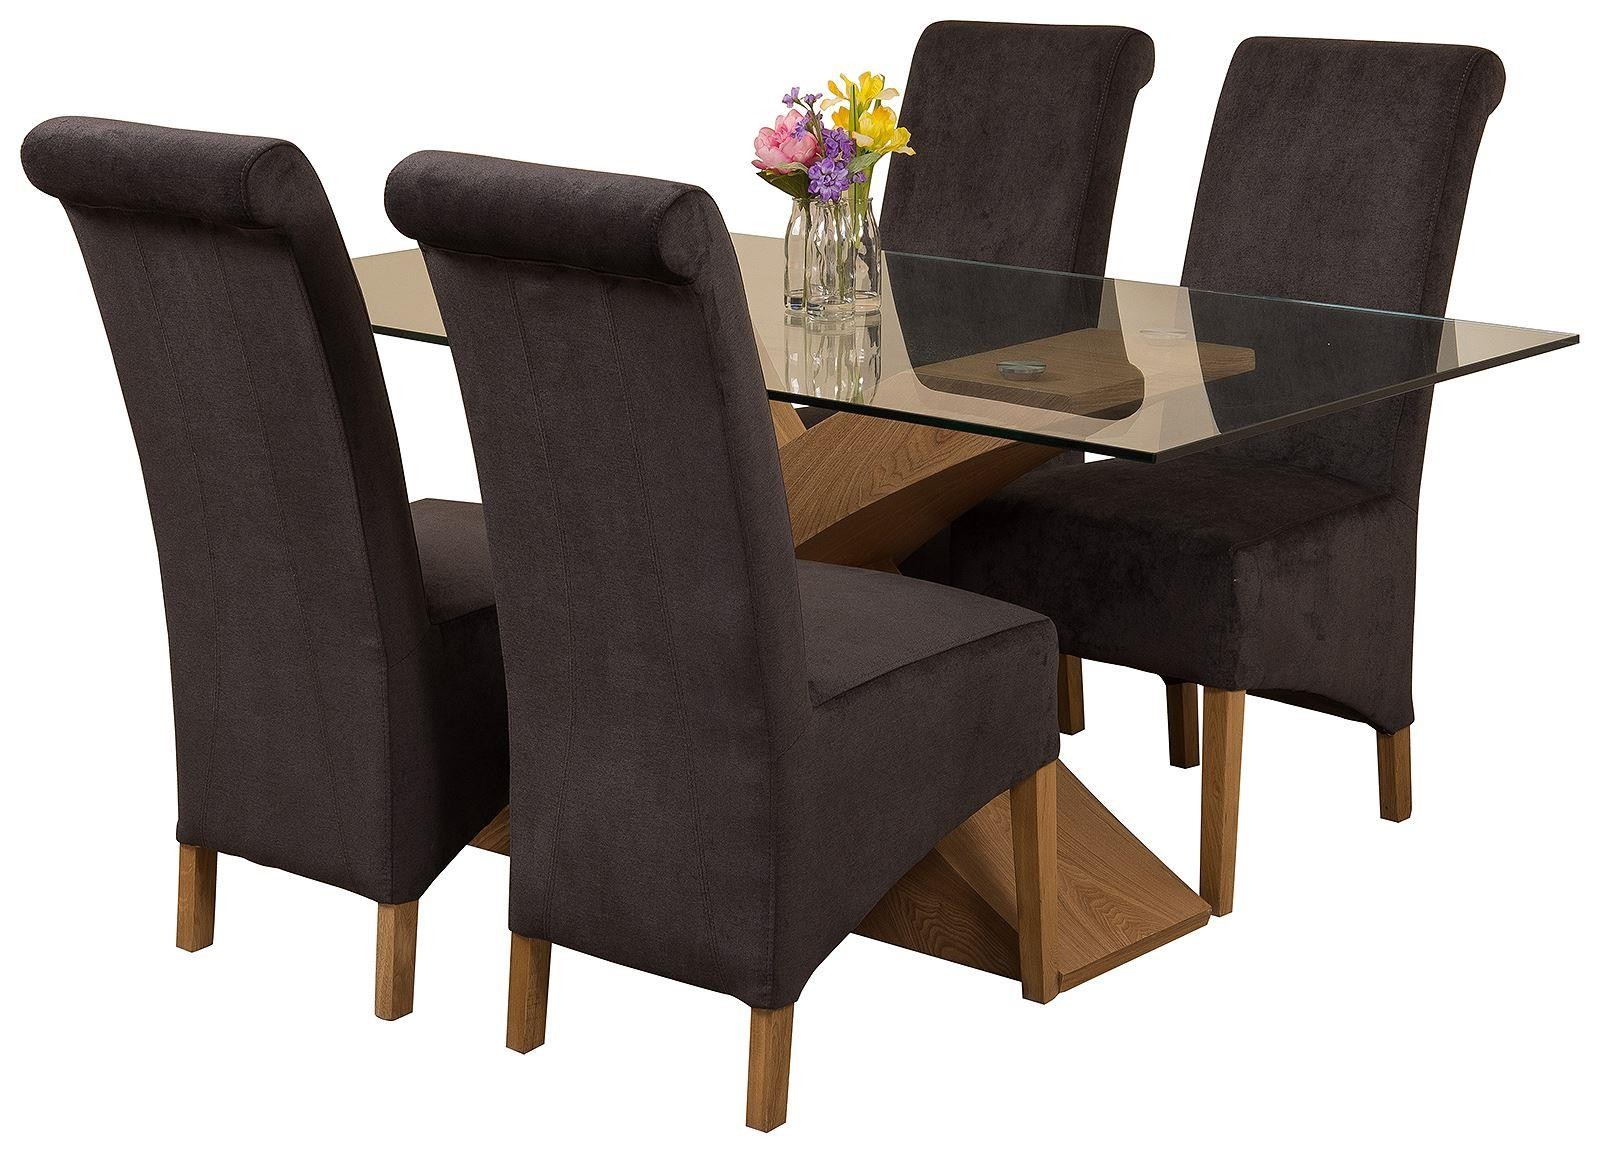 Valencia Oak 160cm Wood and Glass Dining Table with 4 Montana Dining Chairs [Black Fabric]